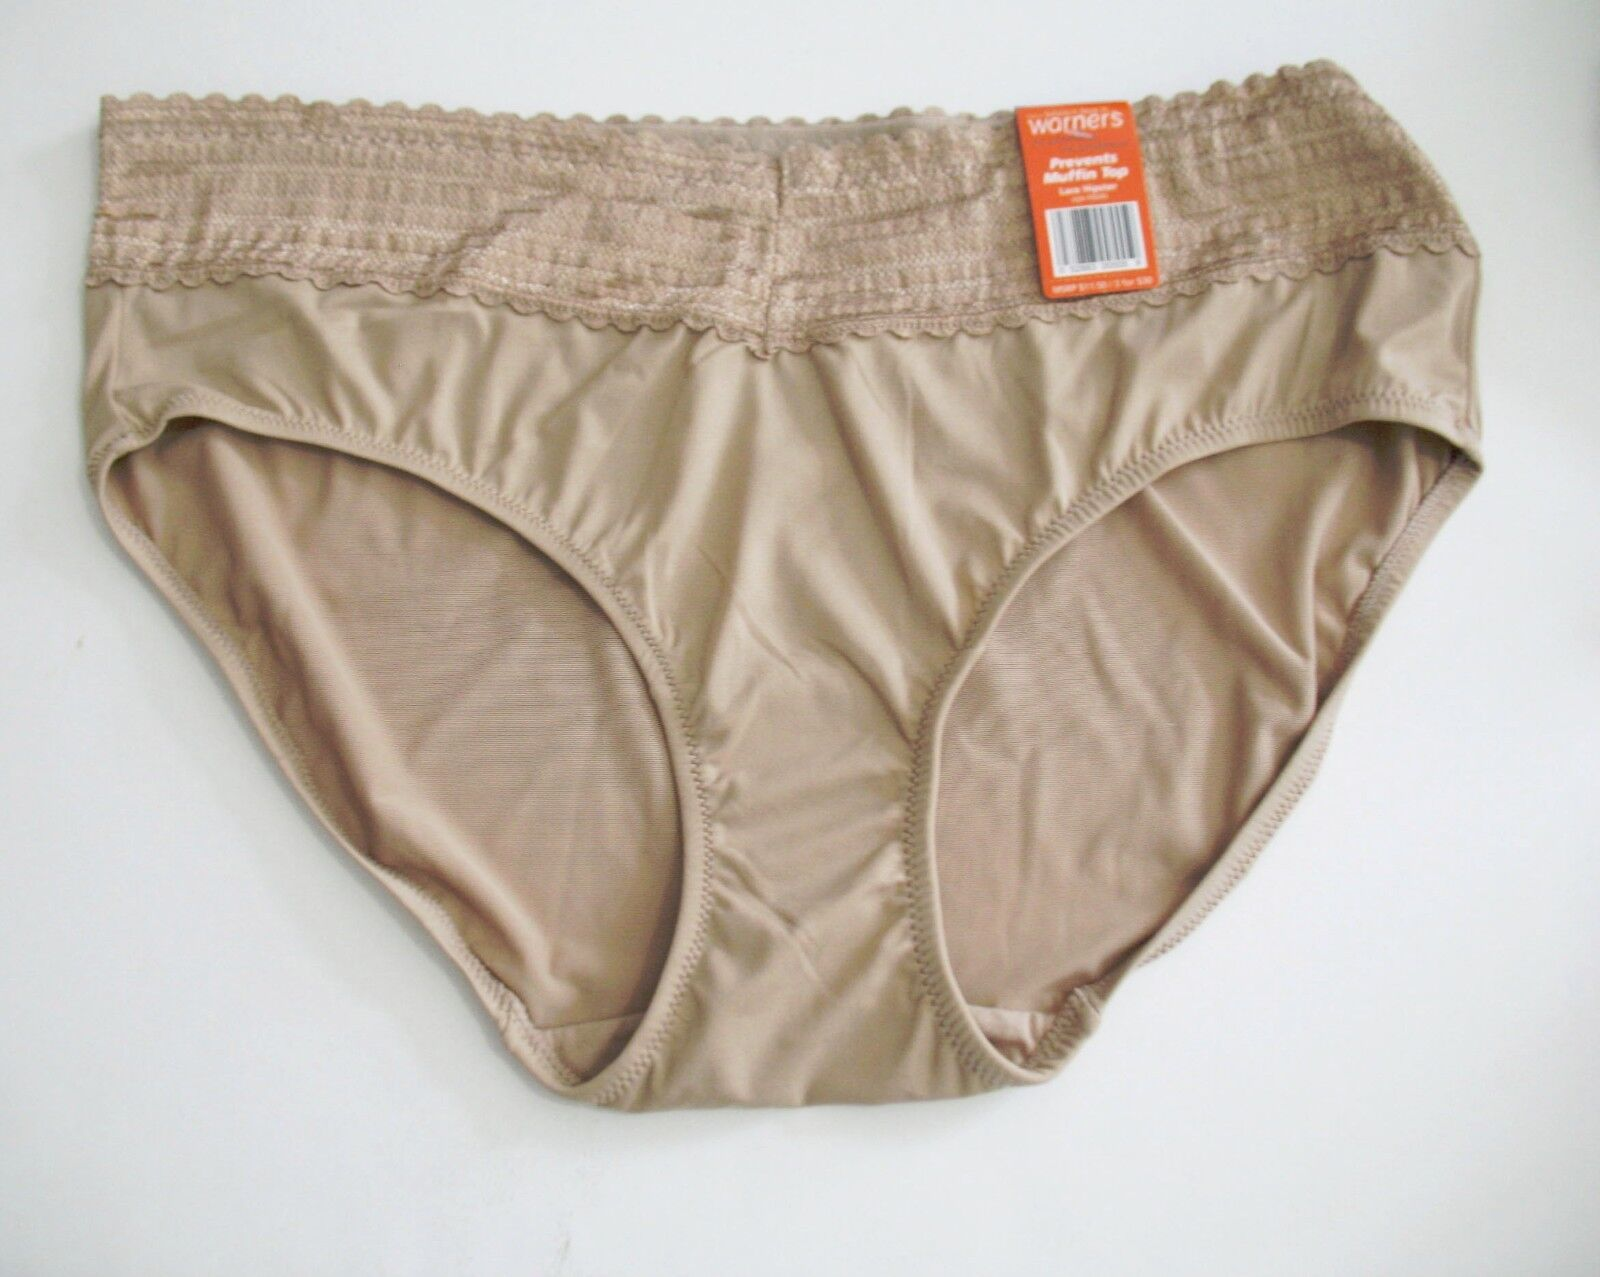 4 Warner's Lace Hipster Panty Toasted Almond 5609J Sz 8 XL - NWT